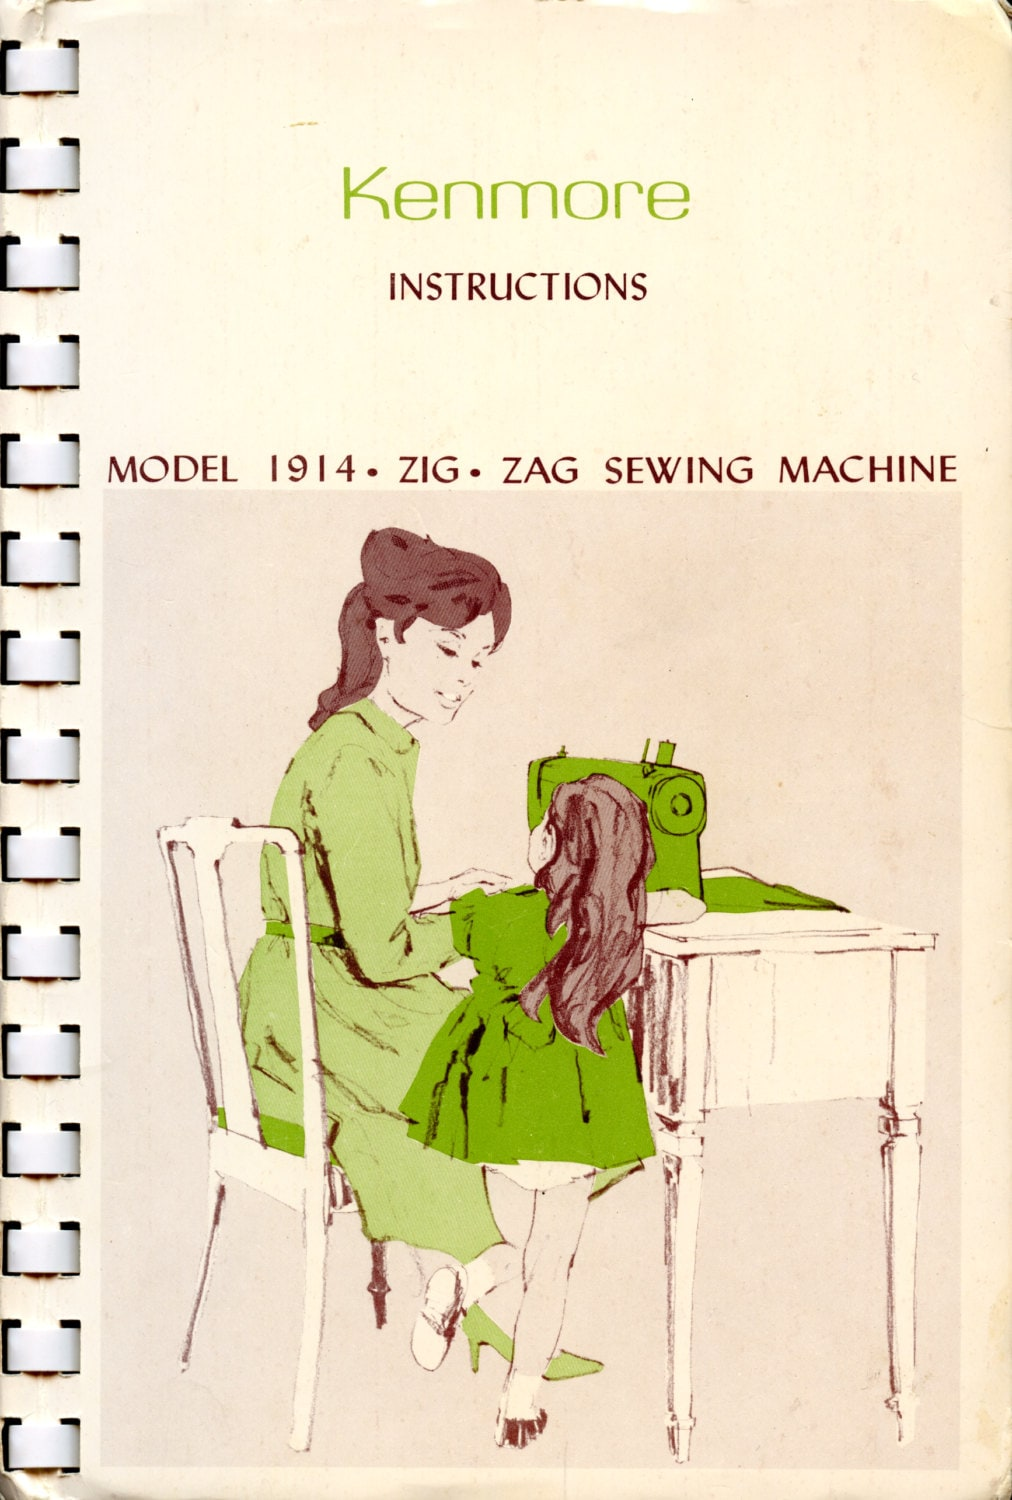 instruction manual for sears kenmore sewing machine model 158.10400